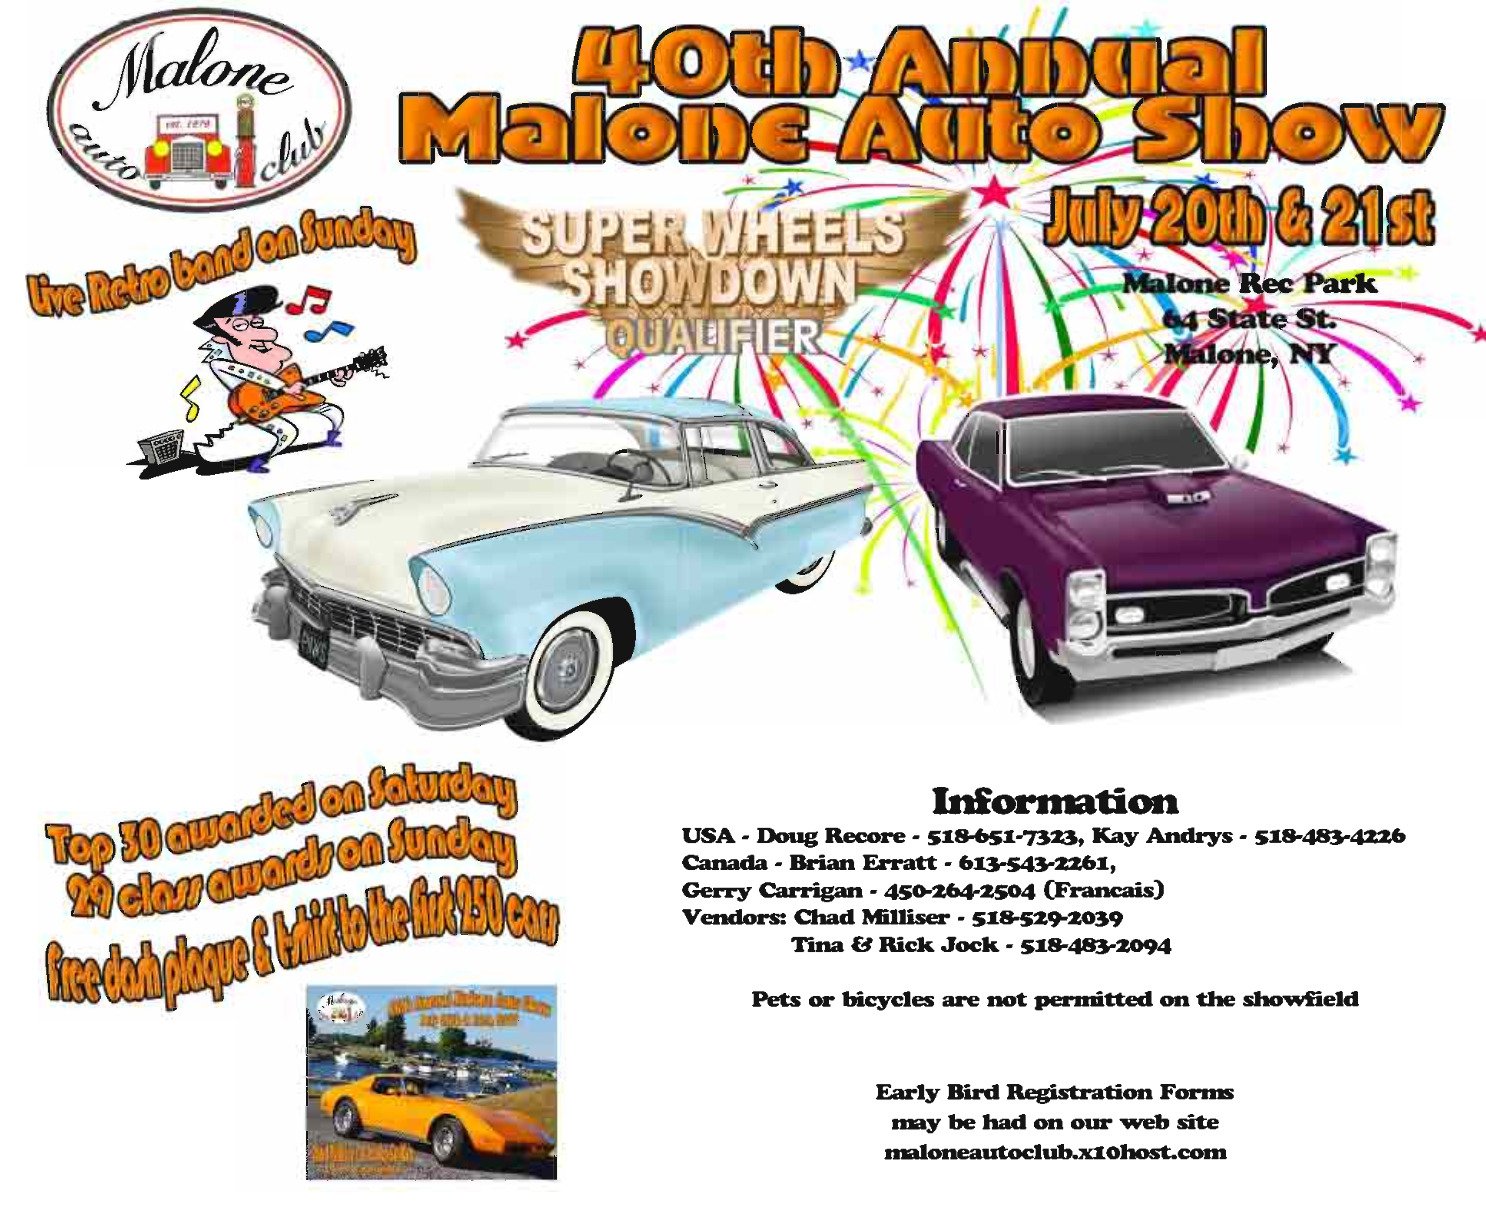 40th Annual Malone Auto Show and Flea Market 2019 @ Malone Red Park | Malone | New York | United States